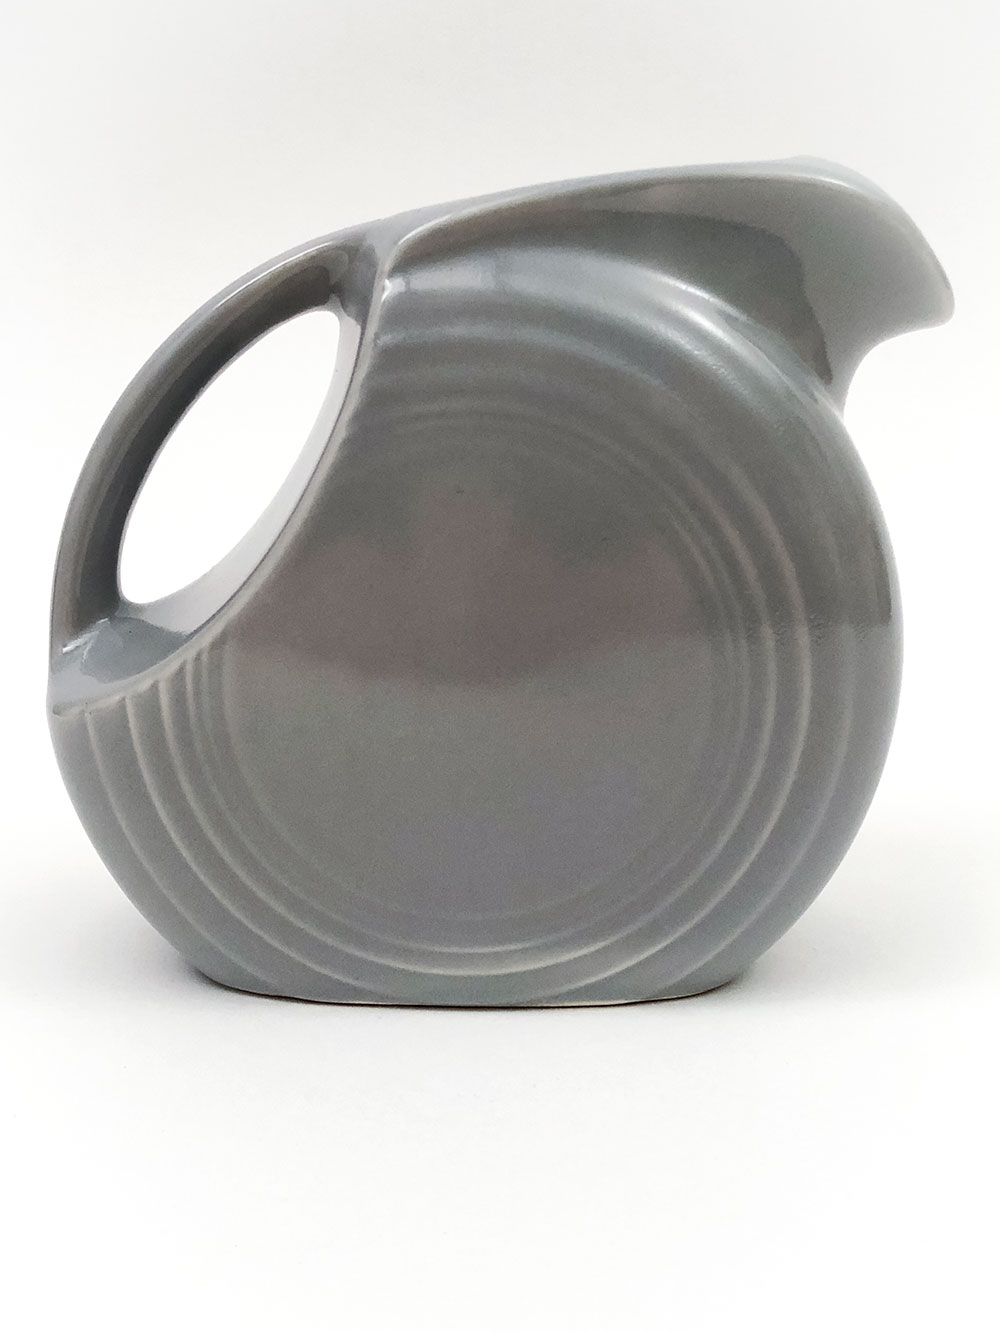 rare fiesta gray juice pitcher